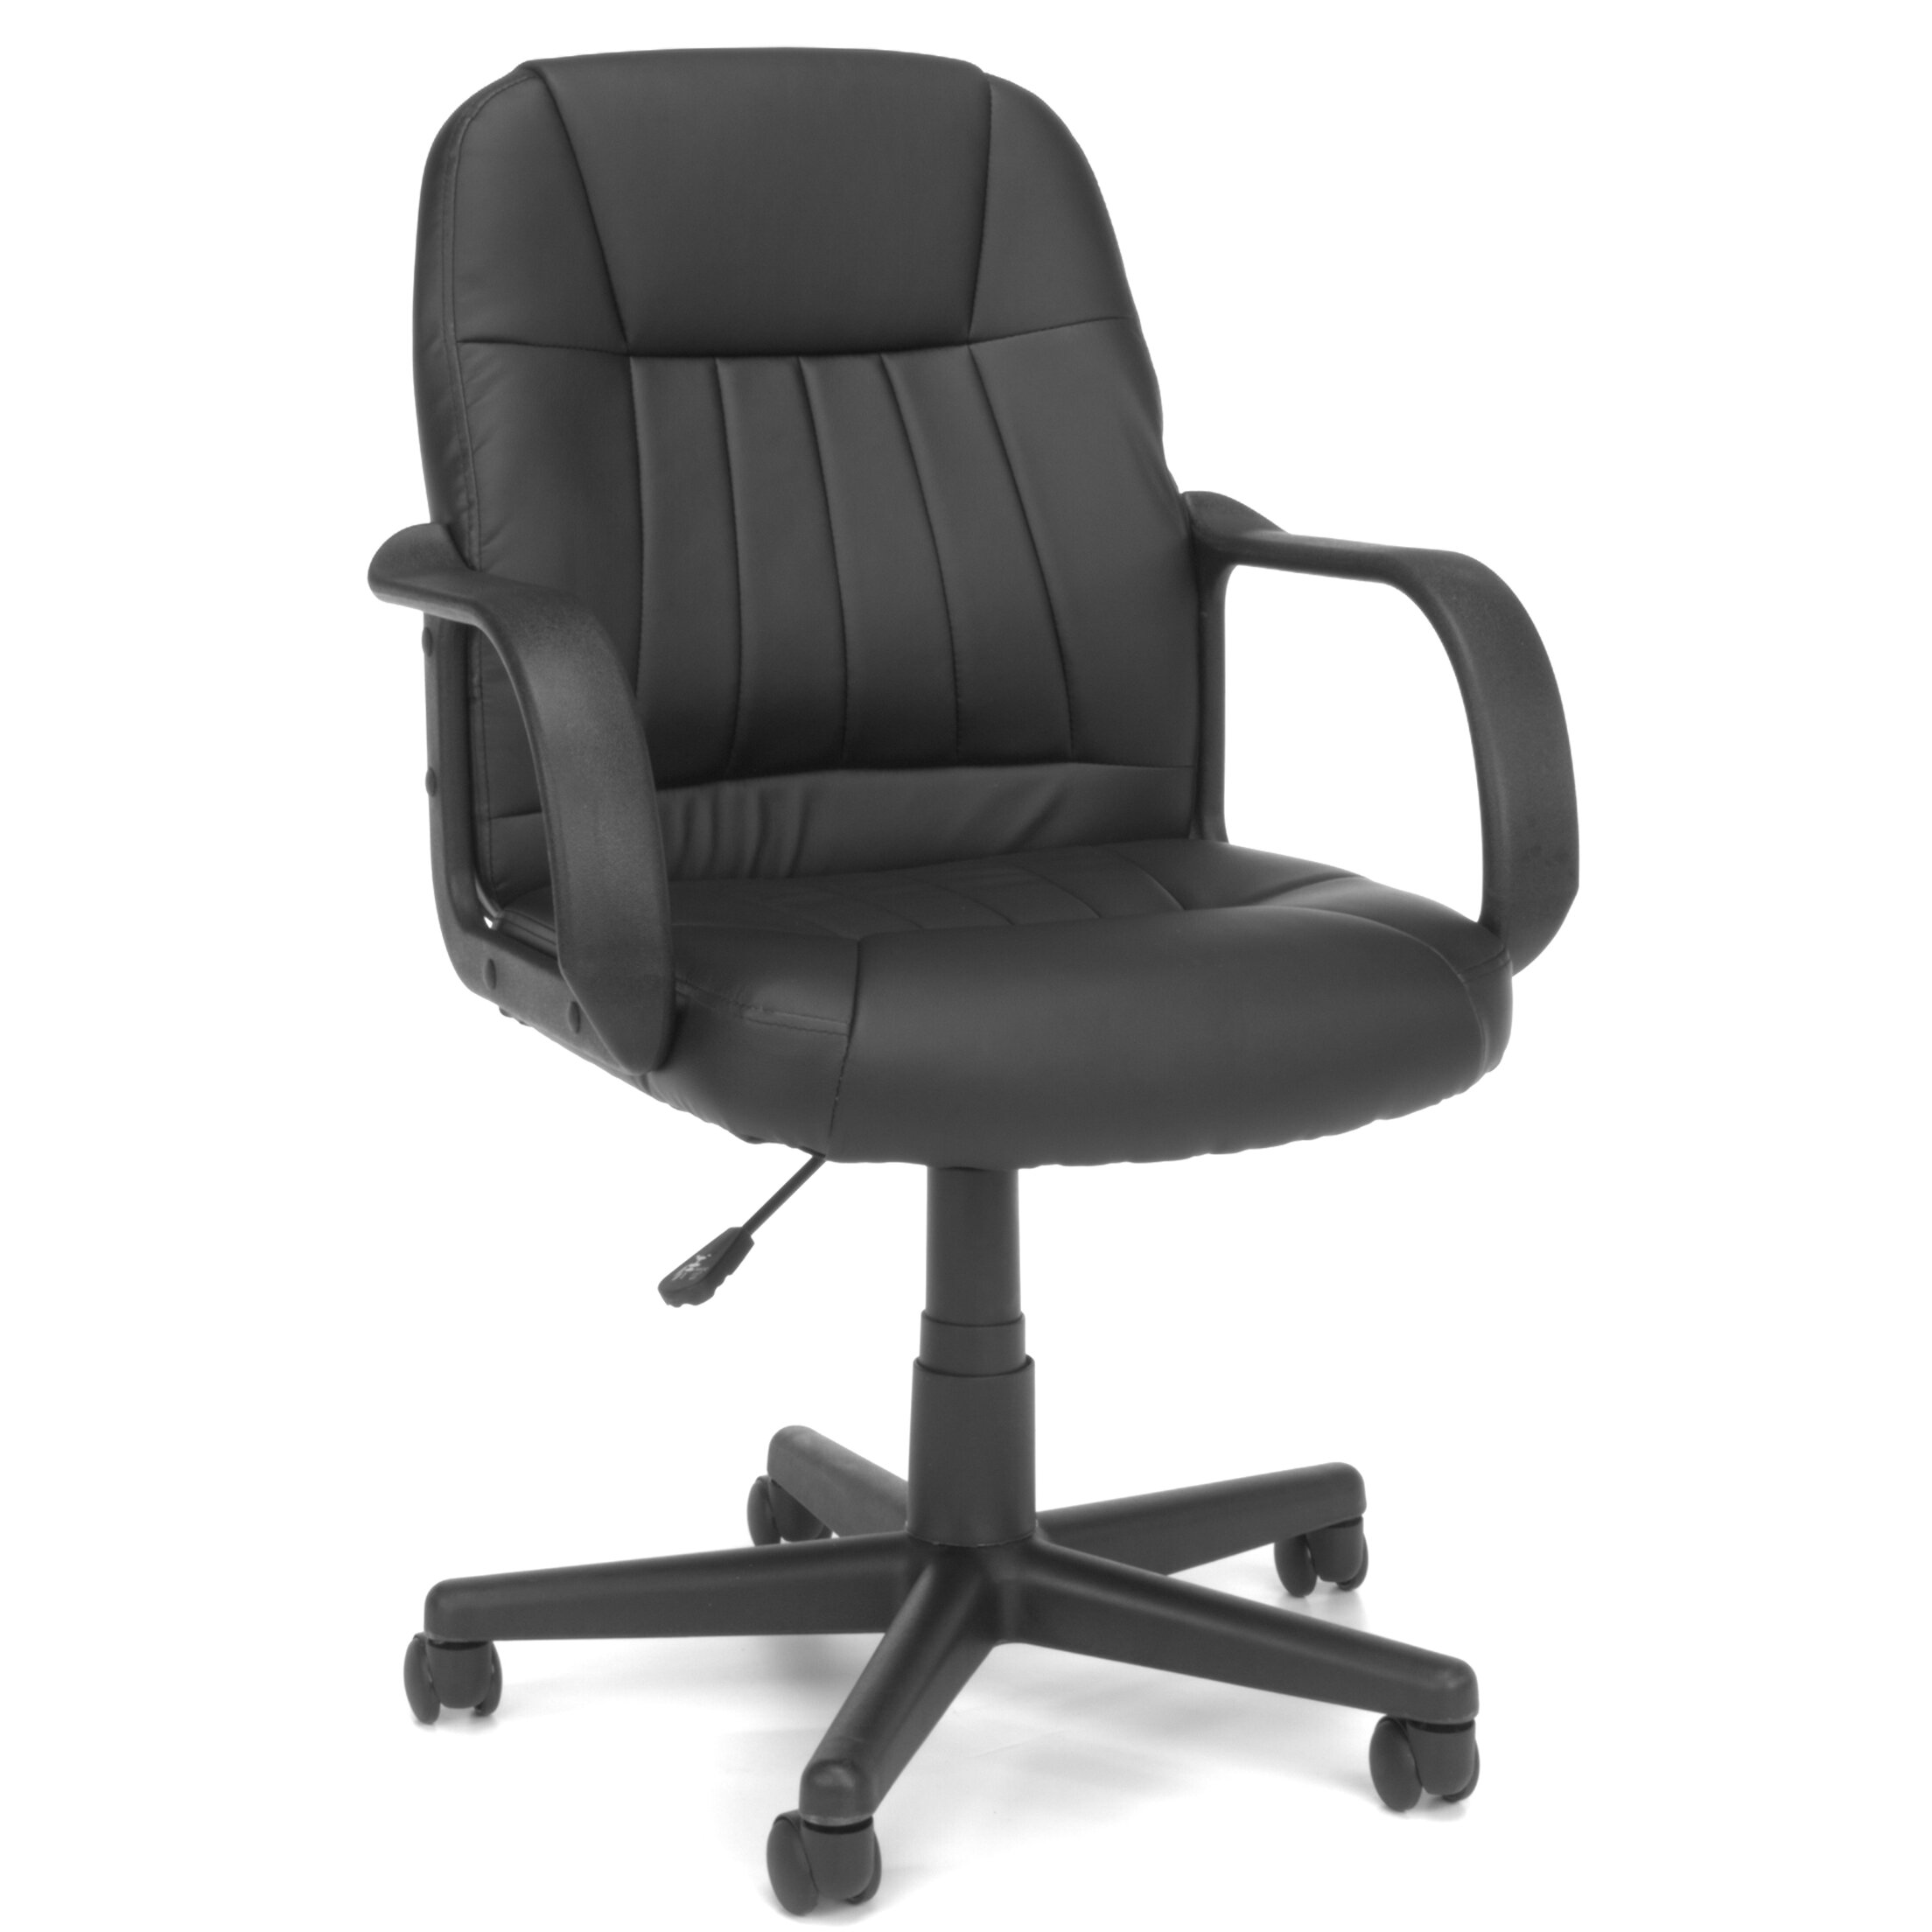 ofm essentials mid back leather executive office chair reviews wayfair. Black Bedroom Furniture Sets. Home Design Ideas